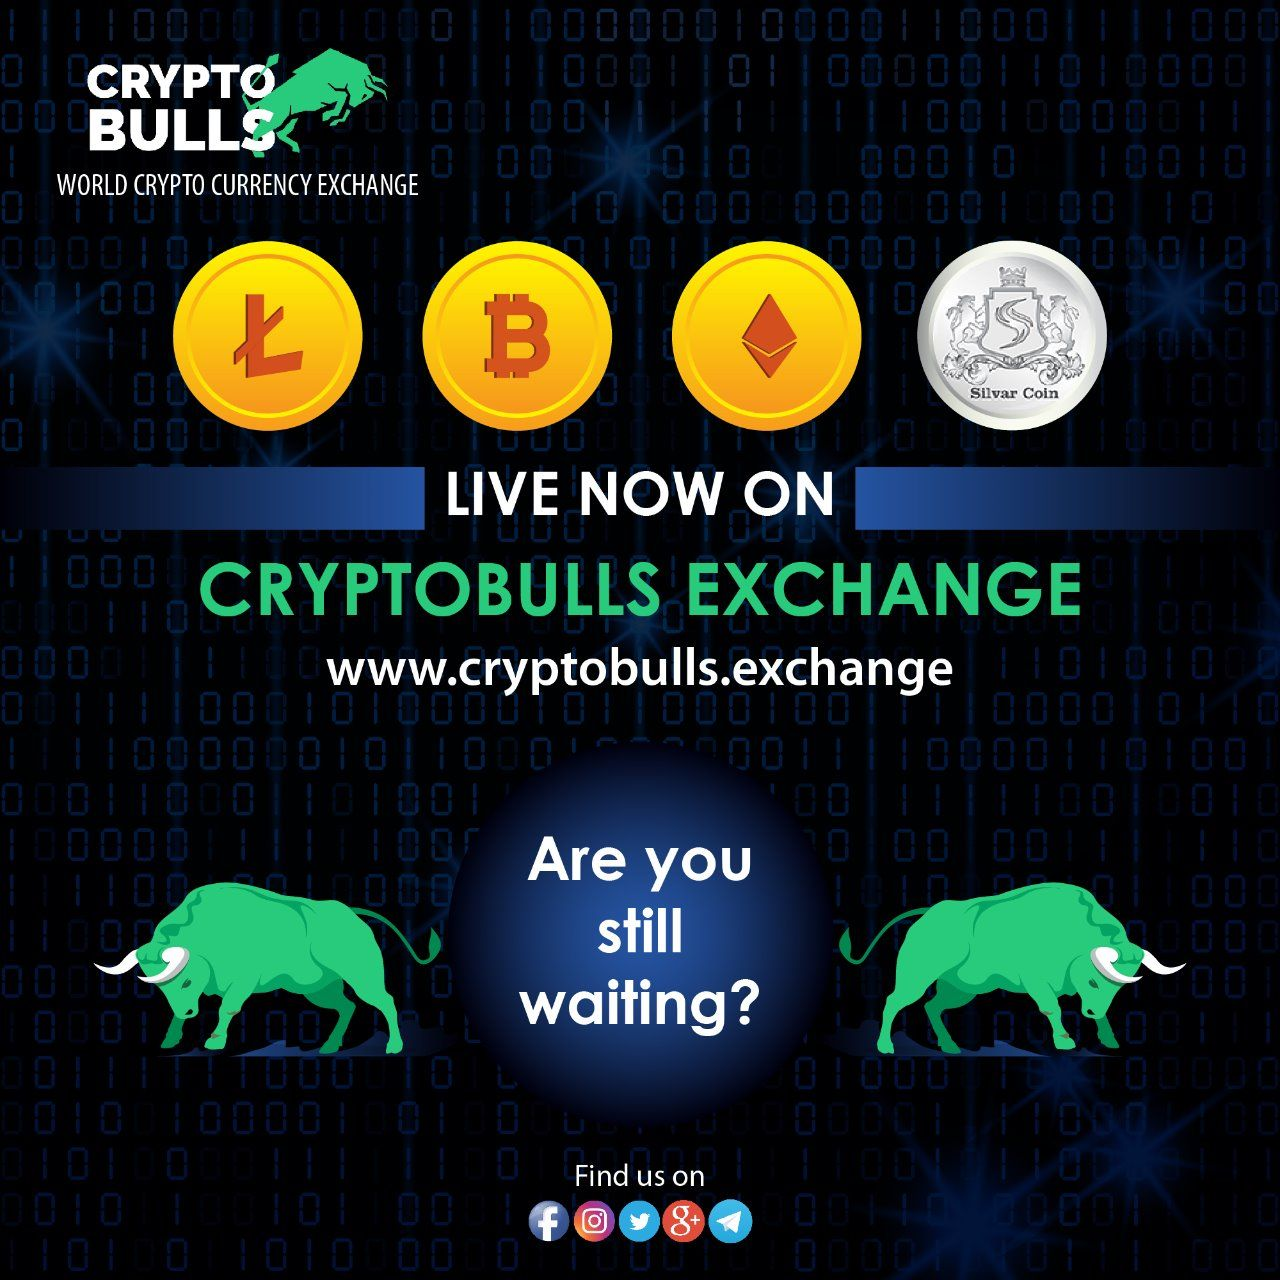 Cryptobulls is excited to announce the launch of our new